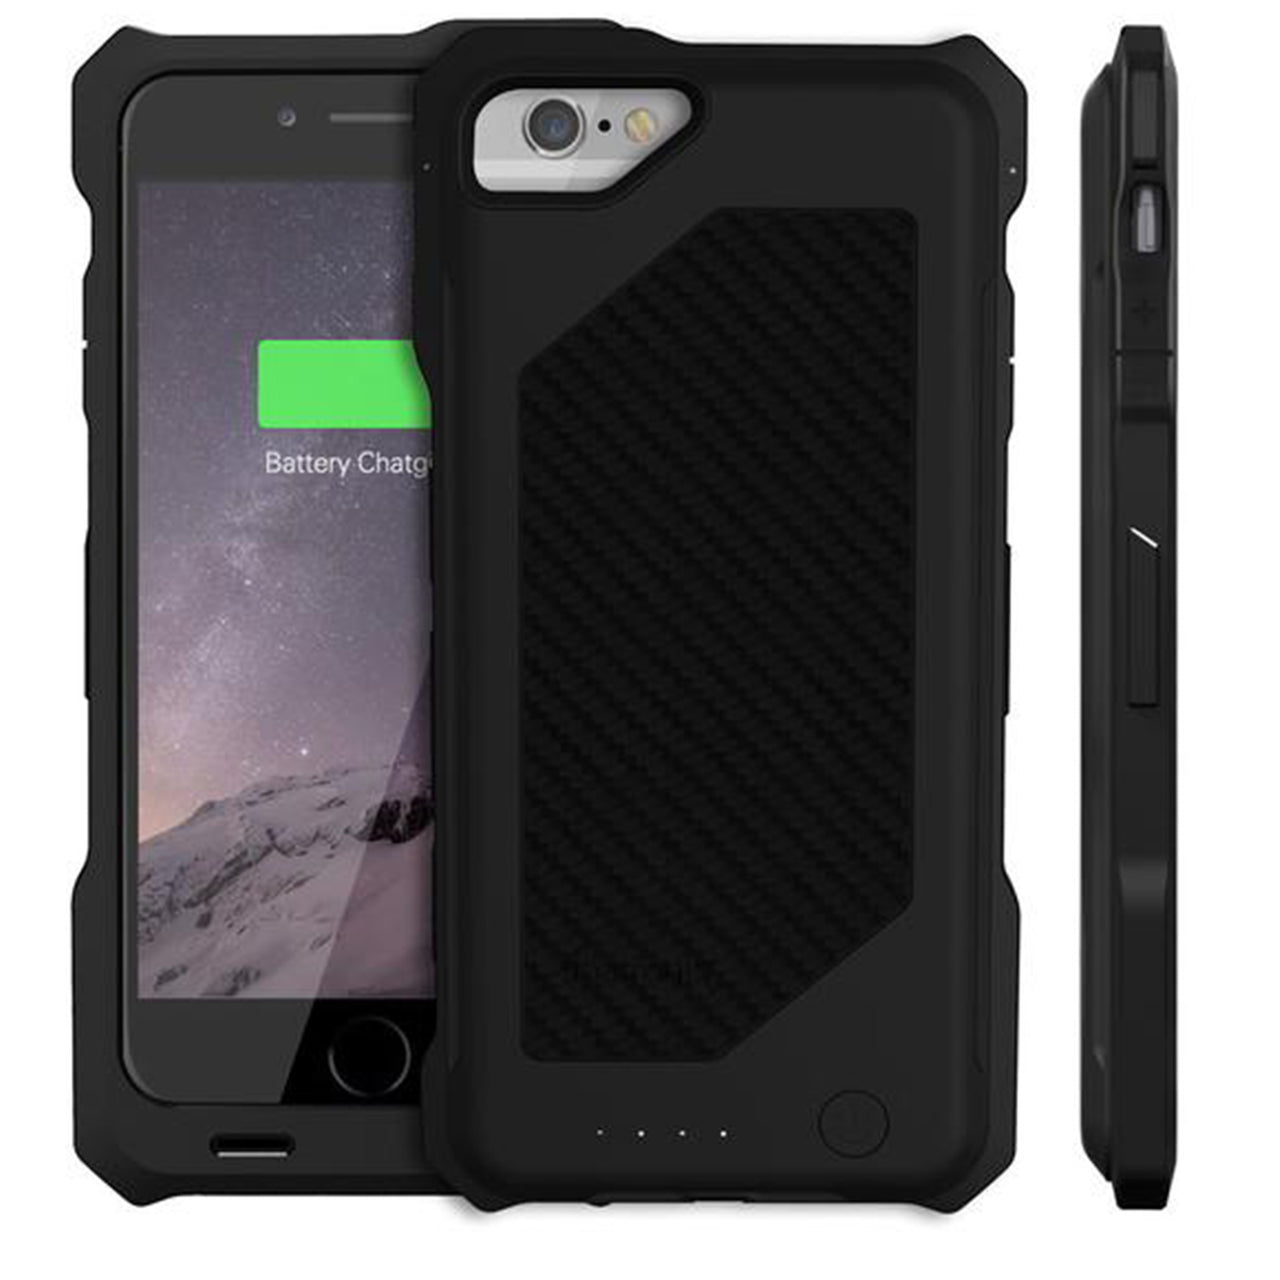 timeless design 5c173 42bf7 3500mAh Rugged Battery Case for iPhone 6 & 6S (BX150)